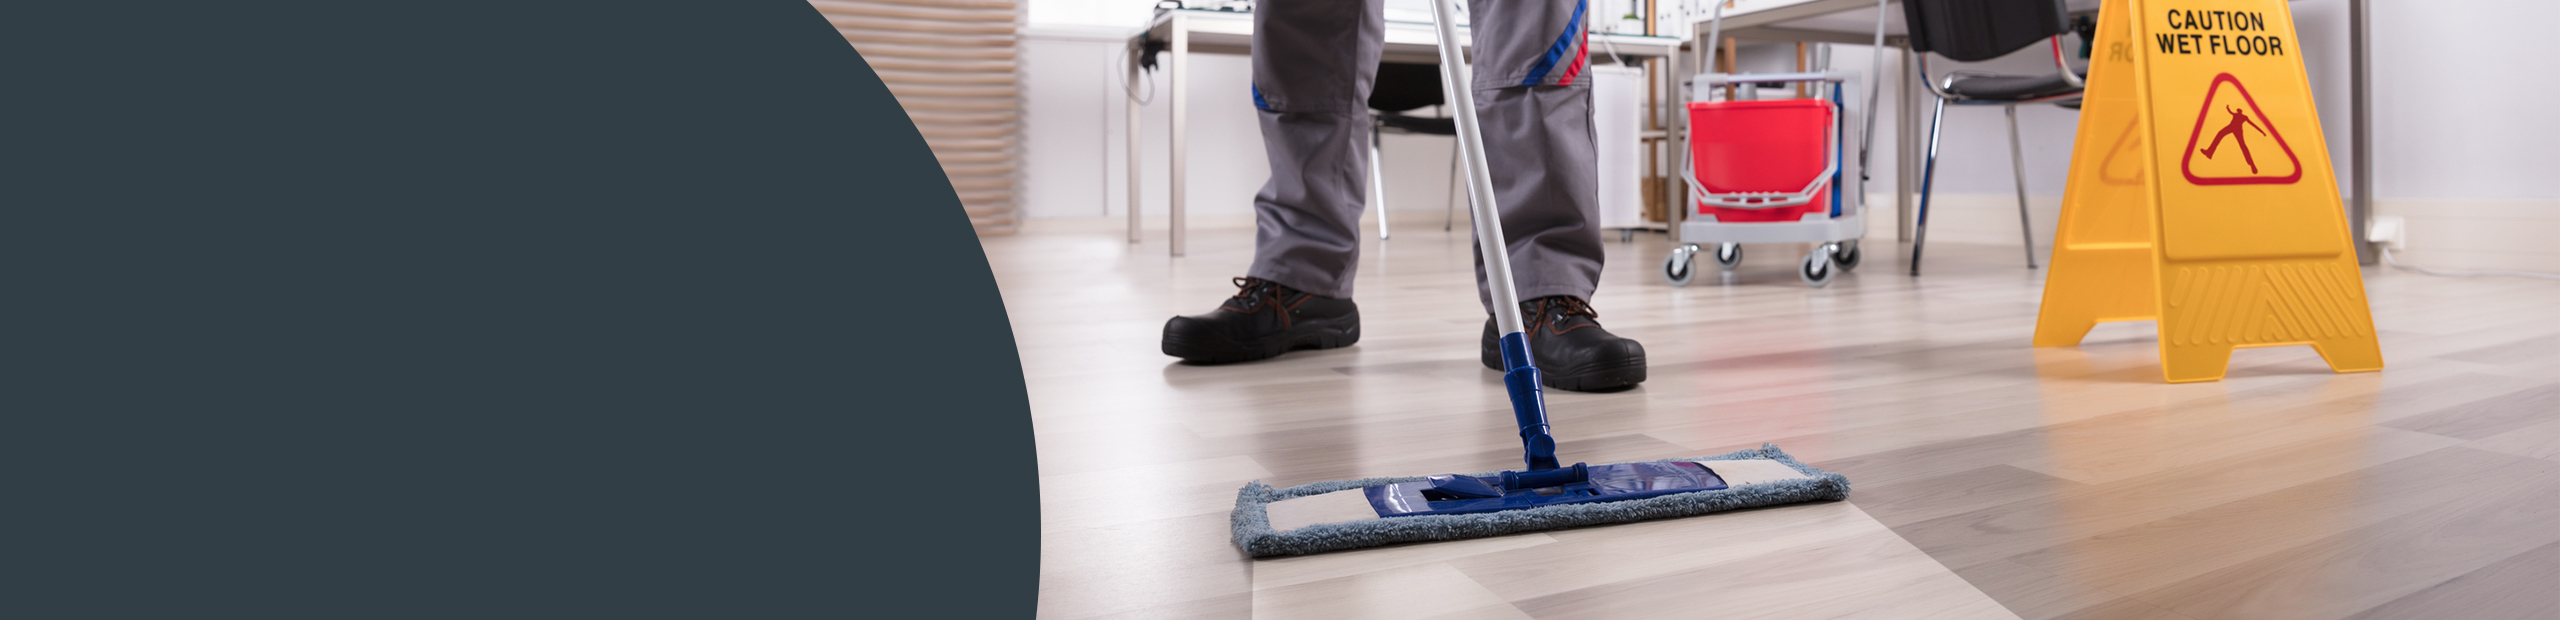 Commercial Cleaning Camden